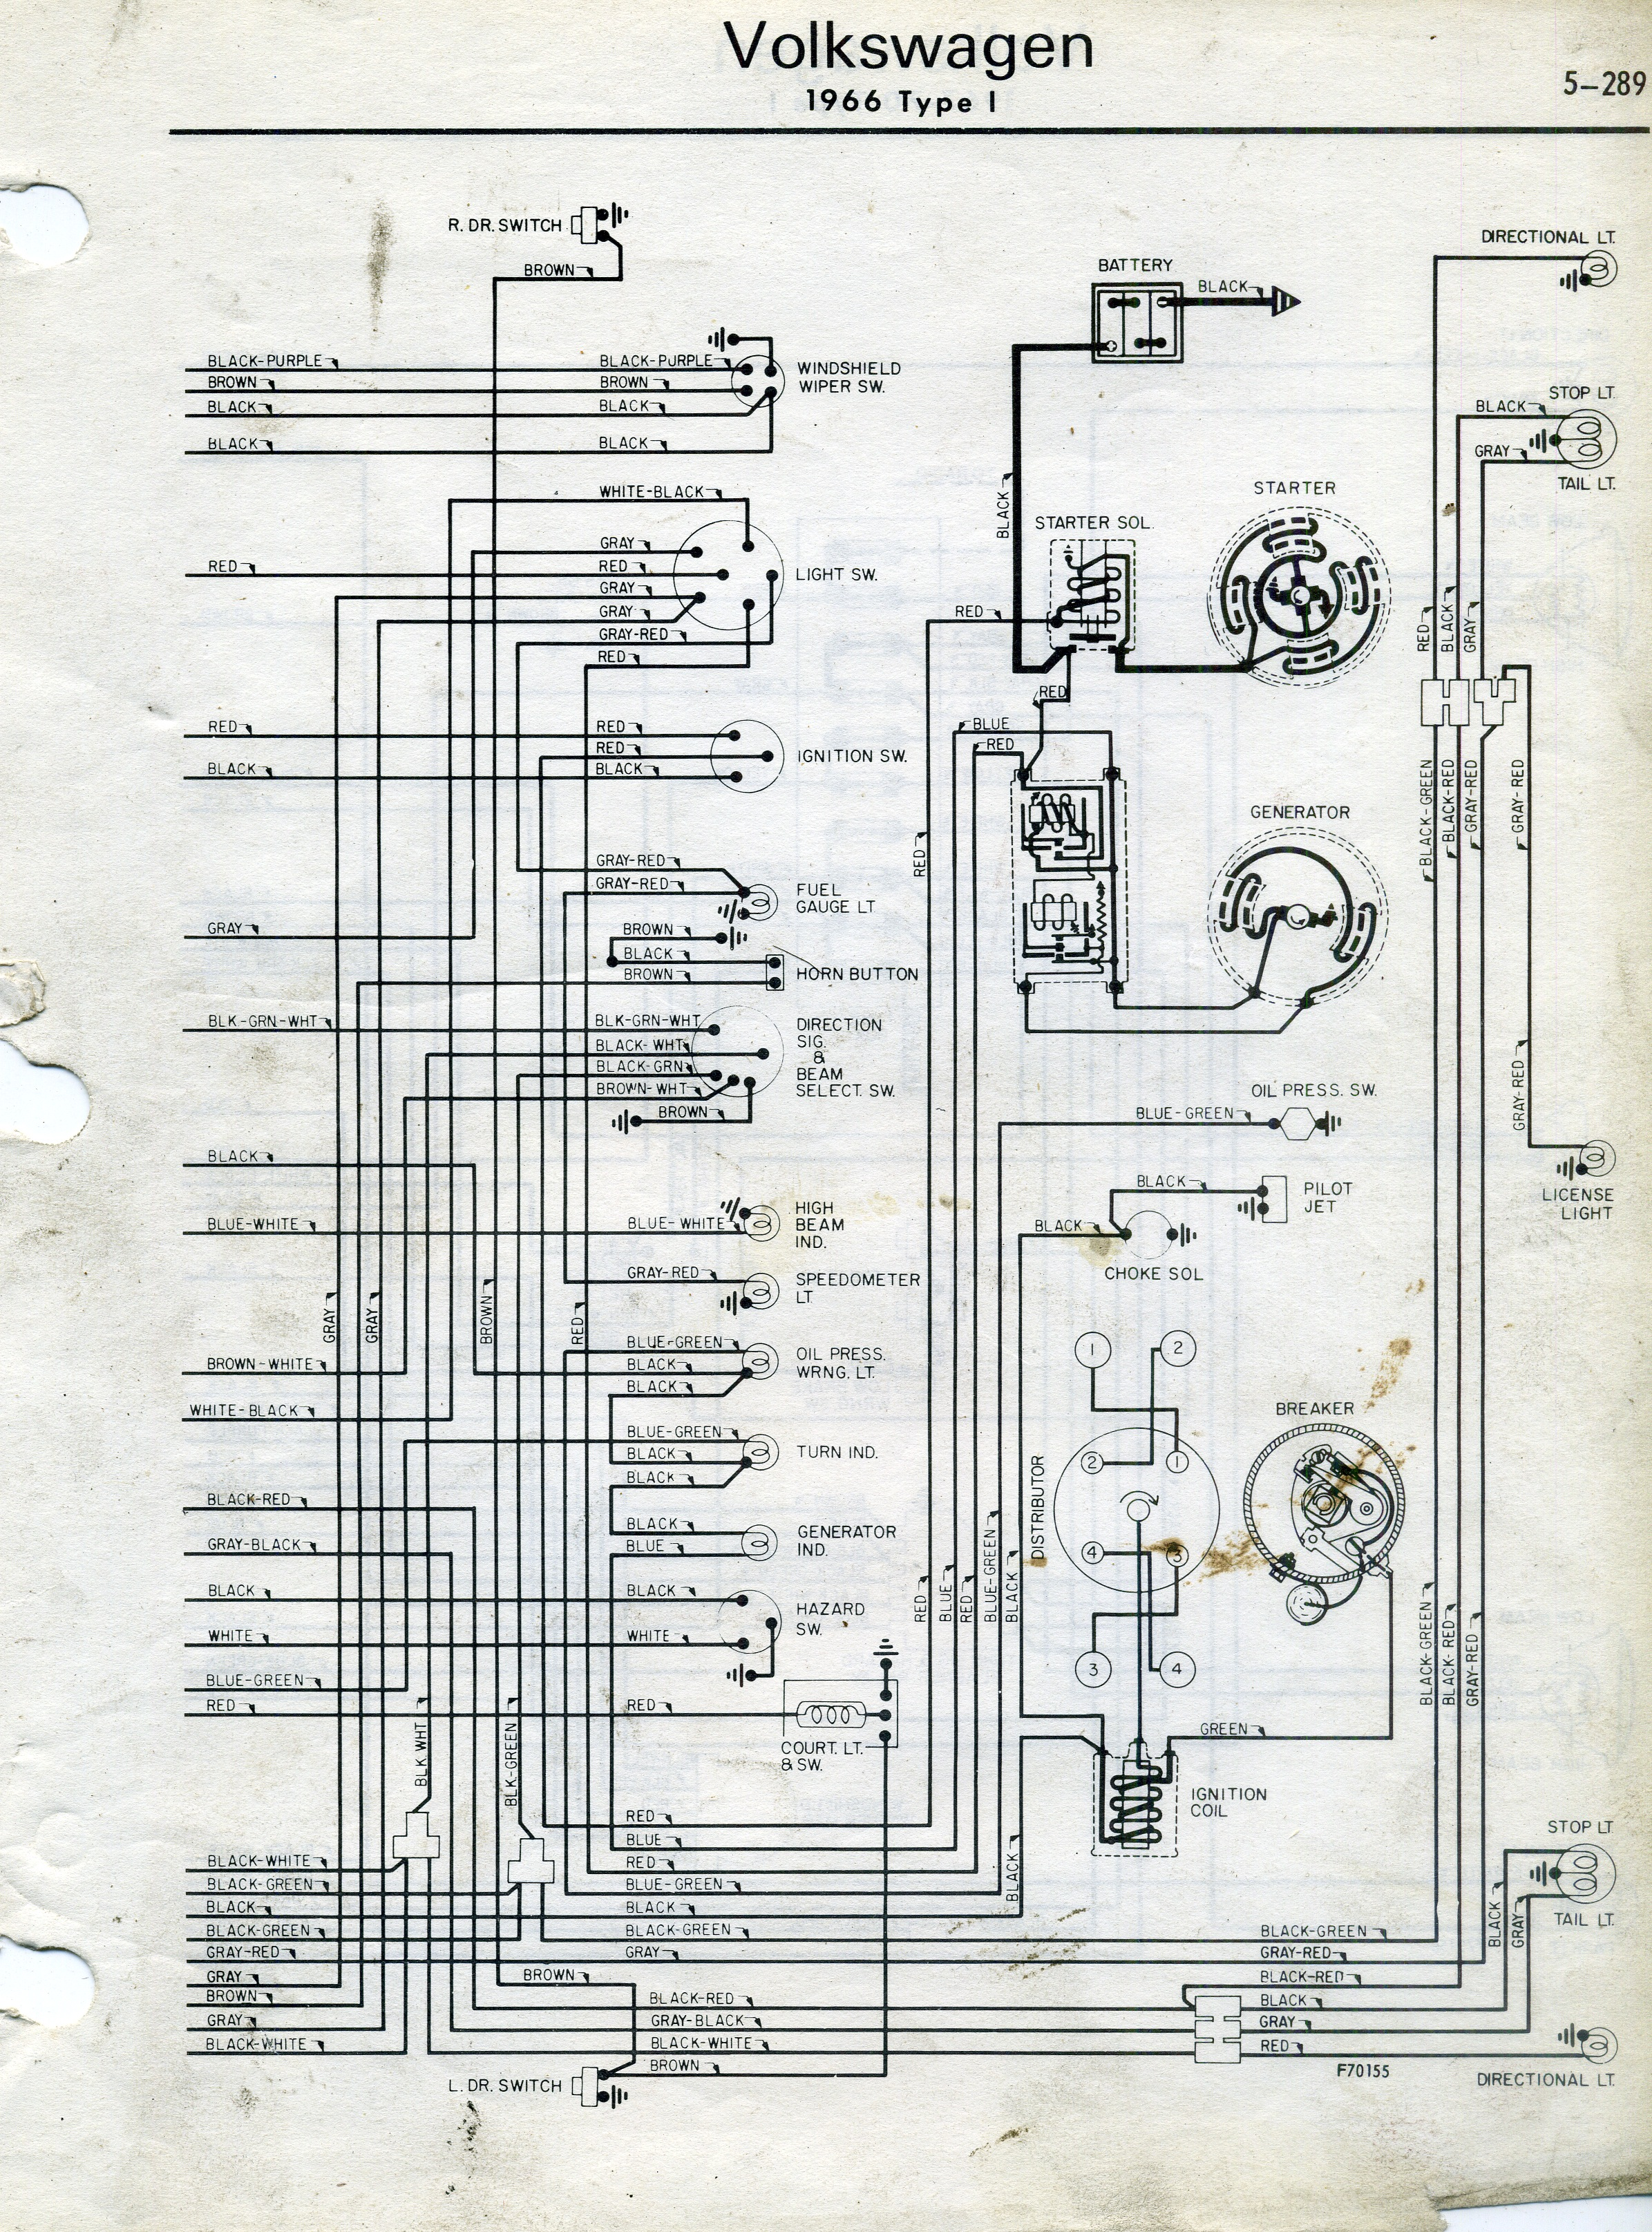 1968 vw type 1 wiring diagram 6 subwoofer thesamba diagrams